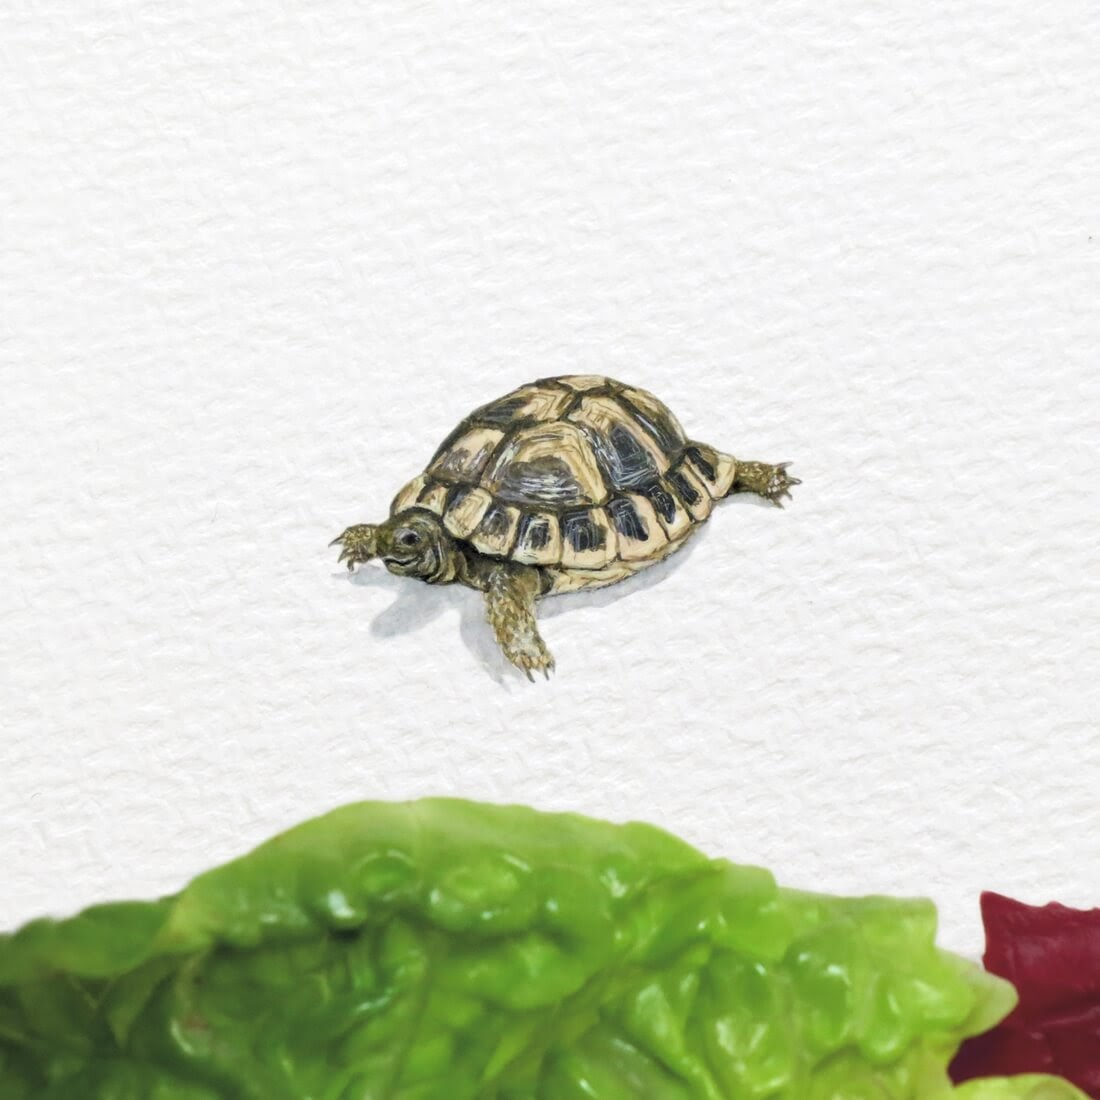 05-Tortoise-Frank Holzenburg Miniature Drawings and Paintings of Animals-www-designstack-co